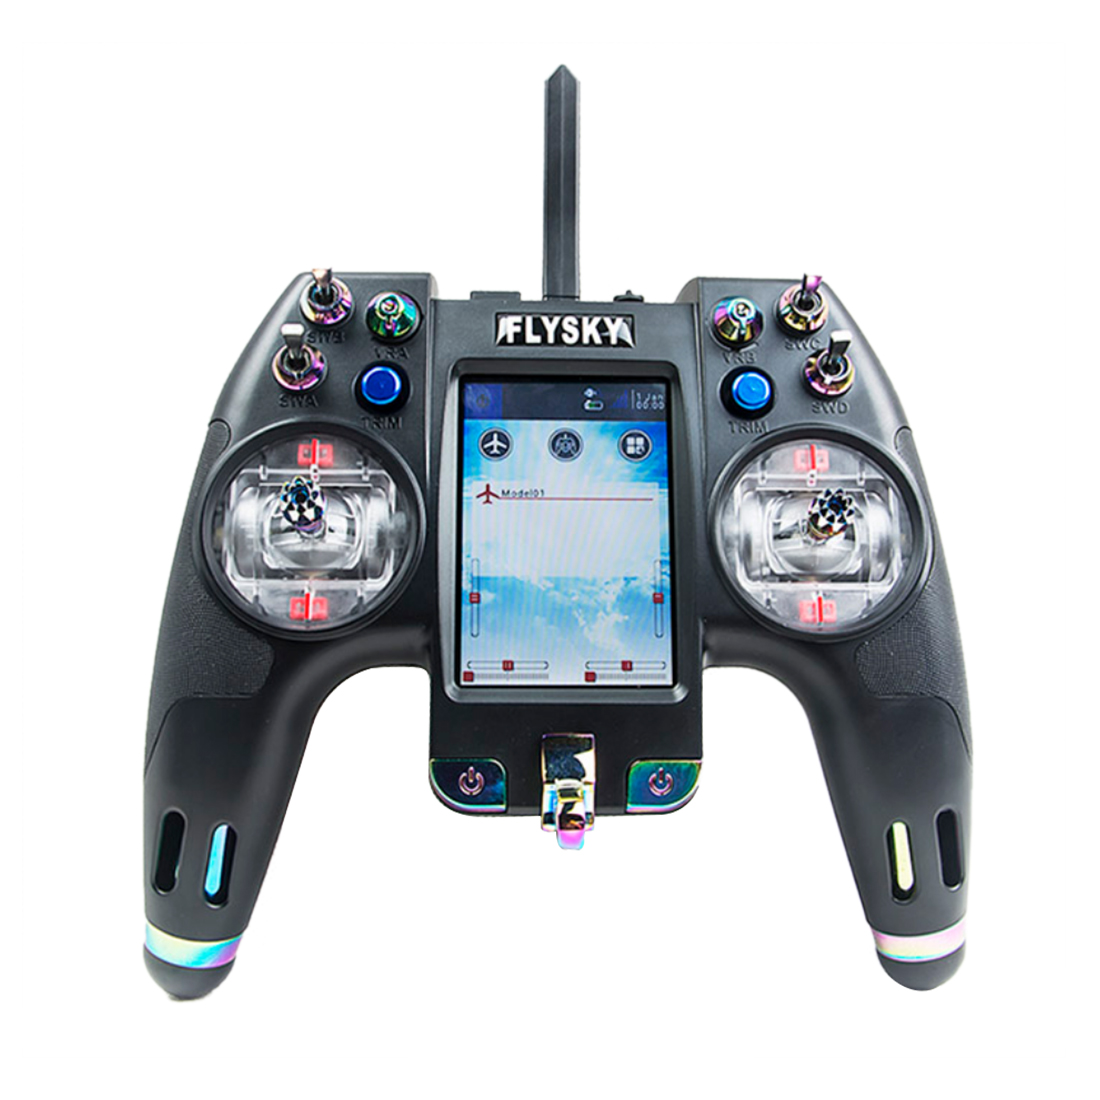 Flysky FS-NV14 2.4G 14CH Nirvana RC Transmitter Remote Controller with iA8X + X8B Dual Receiver 3.5 Inch Display Open Source flysky fs nv14 2 4g 14ch nirvana remote controller transmitter open source with ia8x rx for fpv racing drone rc helicopter